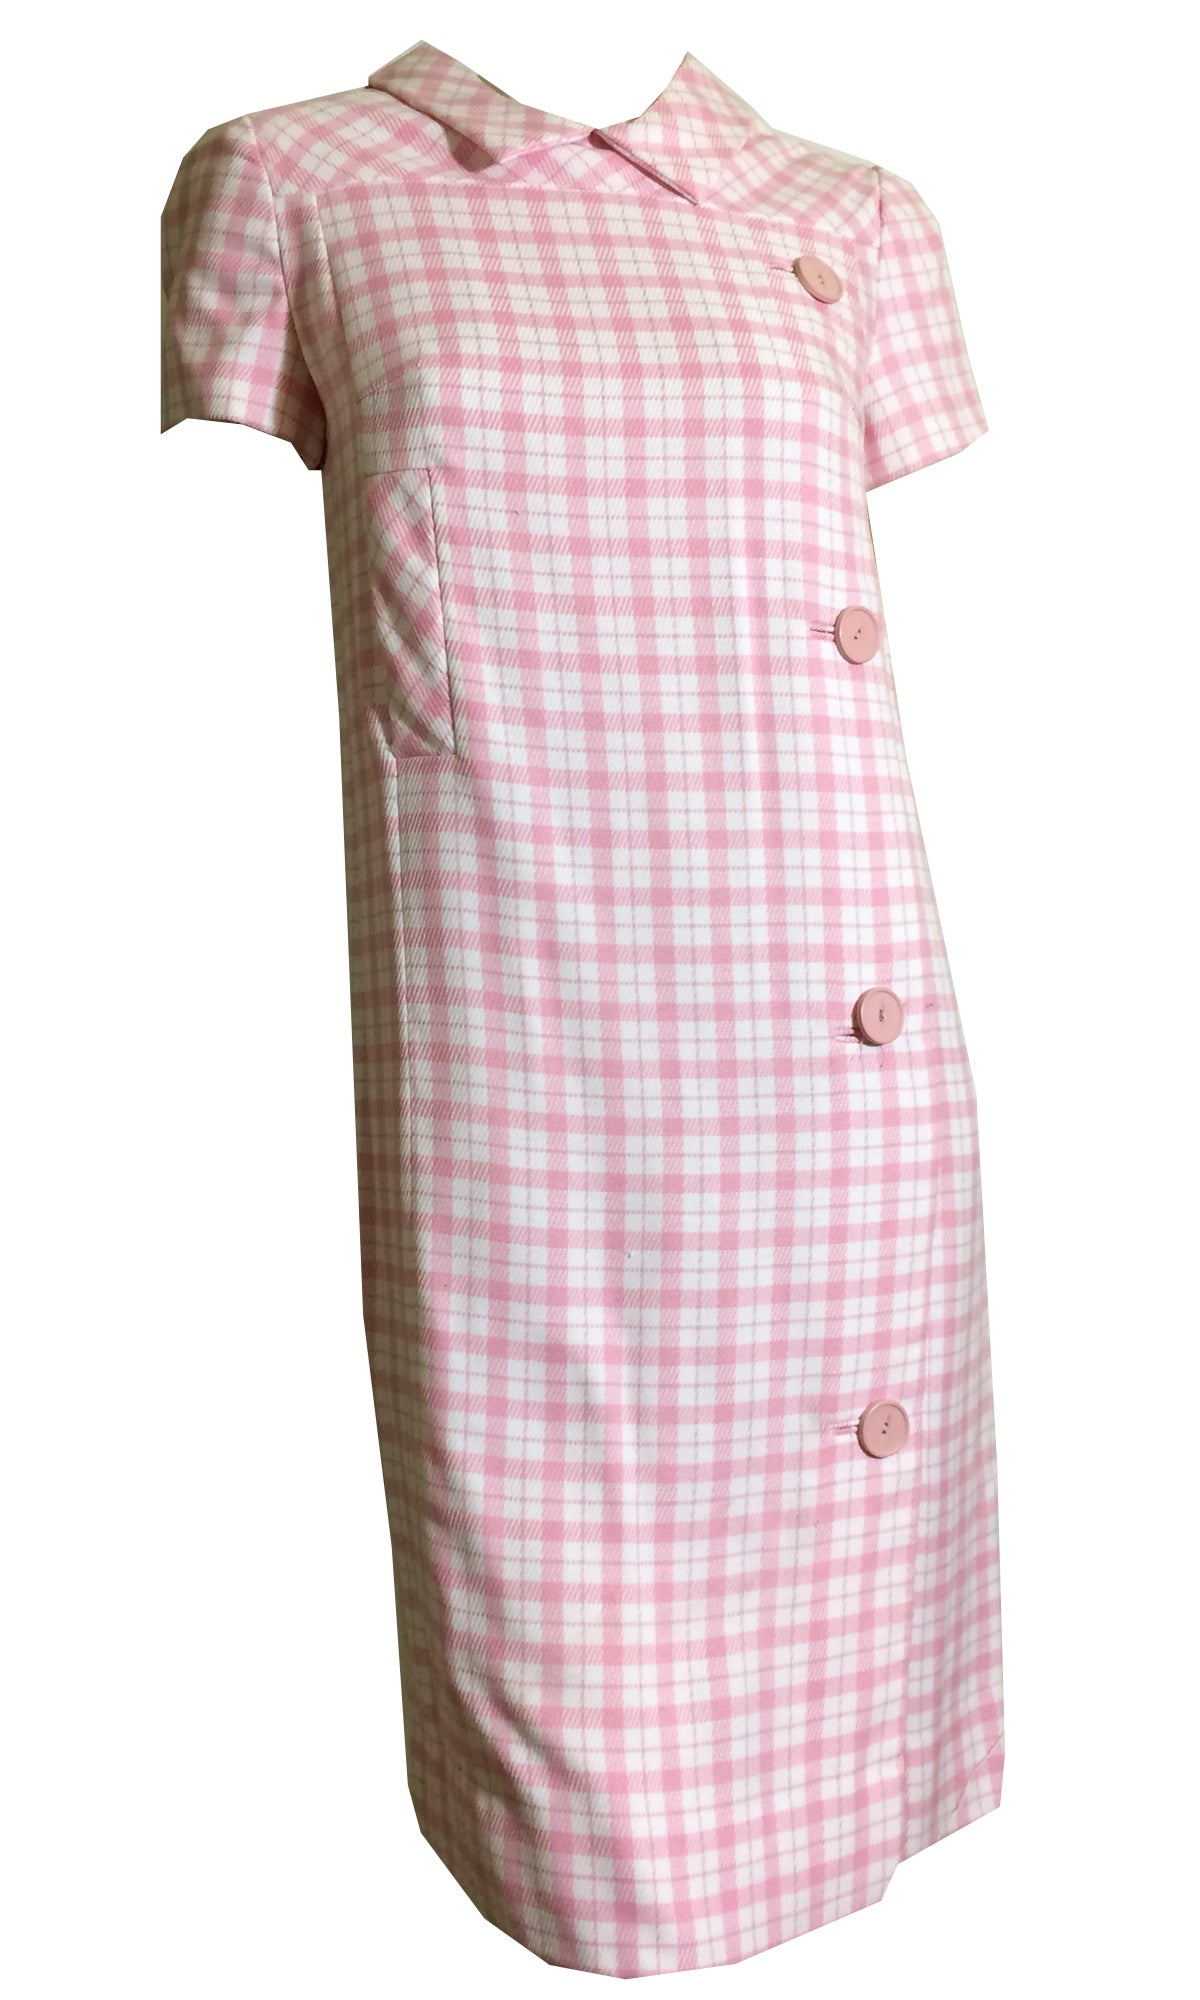 Preppy Pink Plaid Button Trimmed Shift Dress circa 1960s